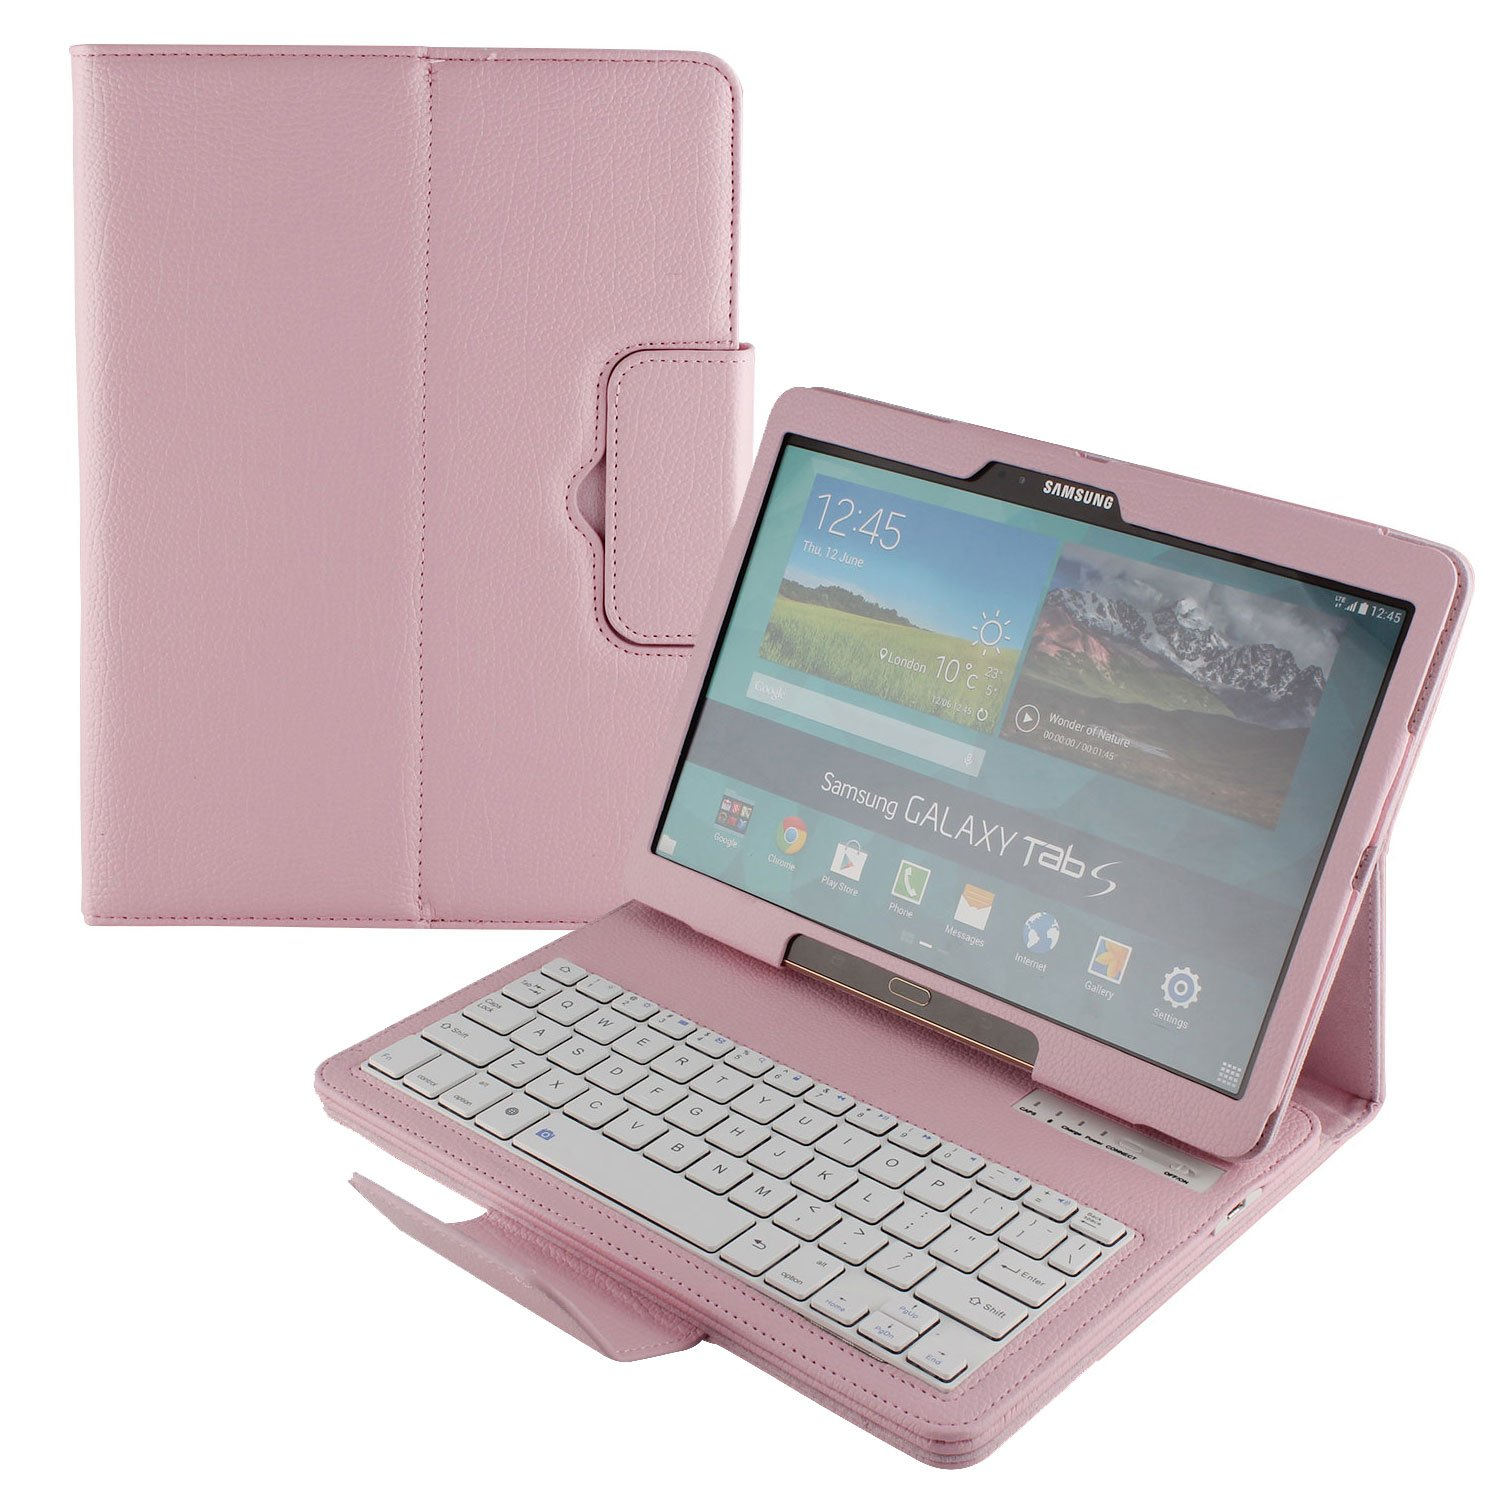 Cooper Cases(TM) CEO Keyboard Folio Case for Samsung Galaxy Tab S 10.5 in Pink (Detachable US QWERTY Keyboard, Dedicated Function Keys, Remote Control Camera Shutter Release, Built-in Display Stand)